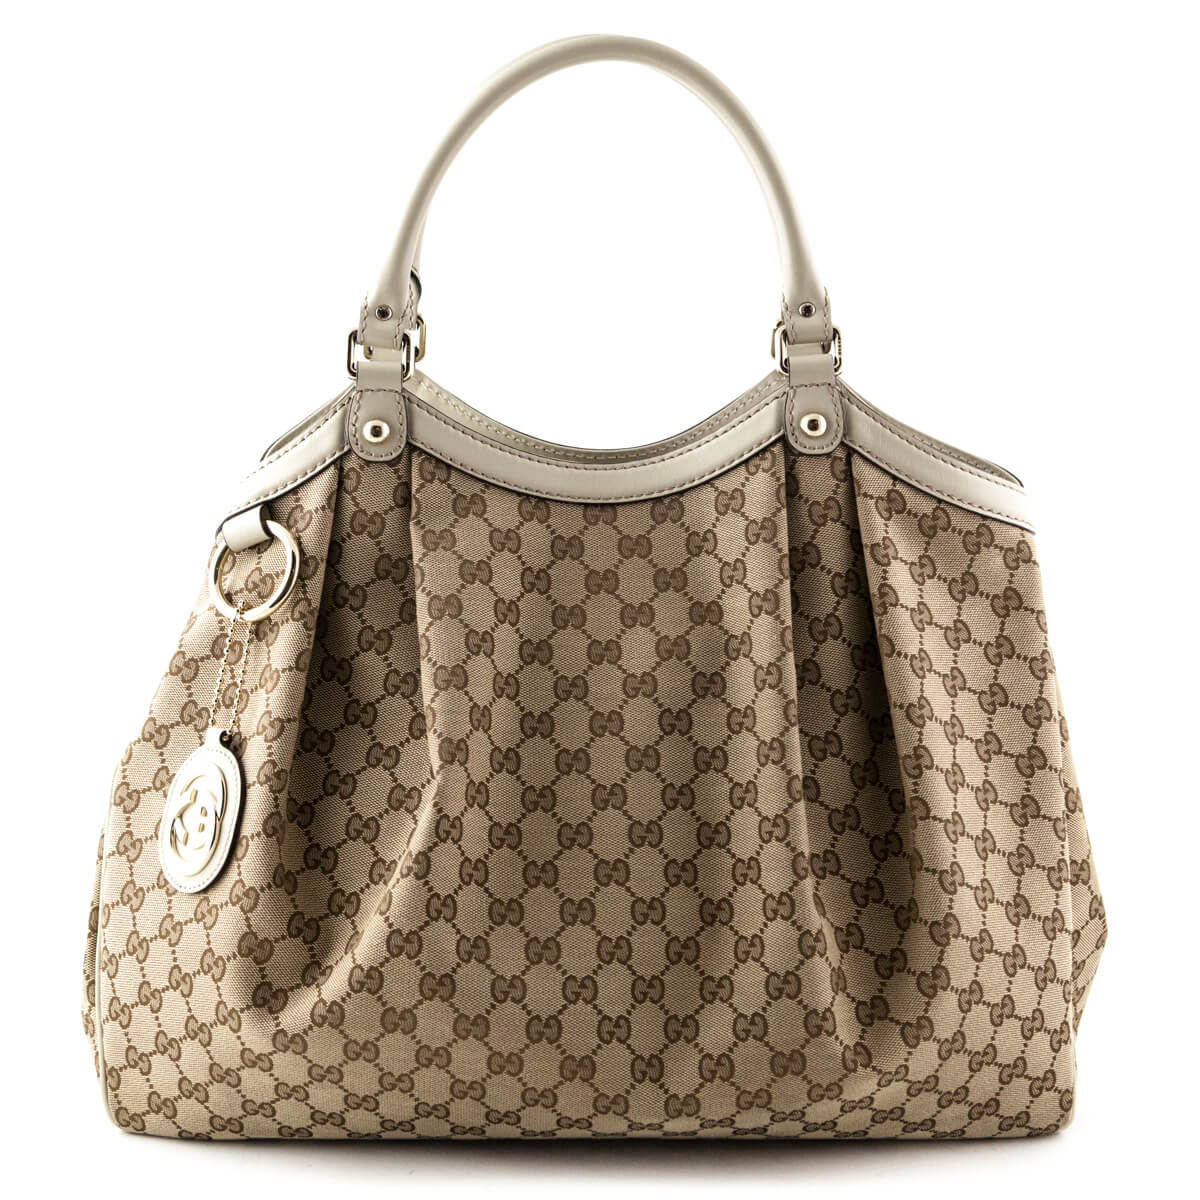 3a1833636fb9 Gucci GG Canvas Large Sukey Tote - LOVE that BAG - Preowned Authentic  Designer Handbags ...